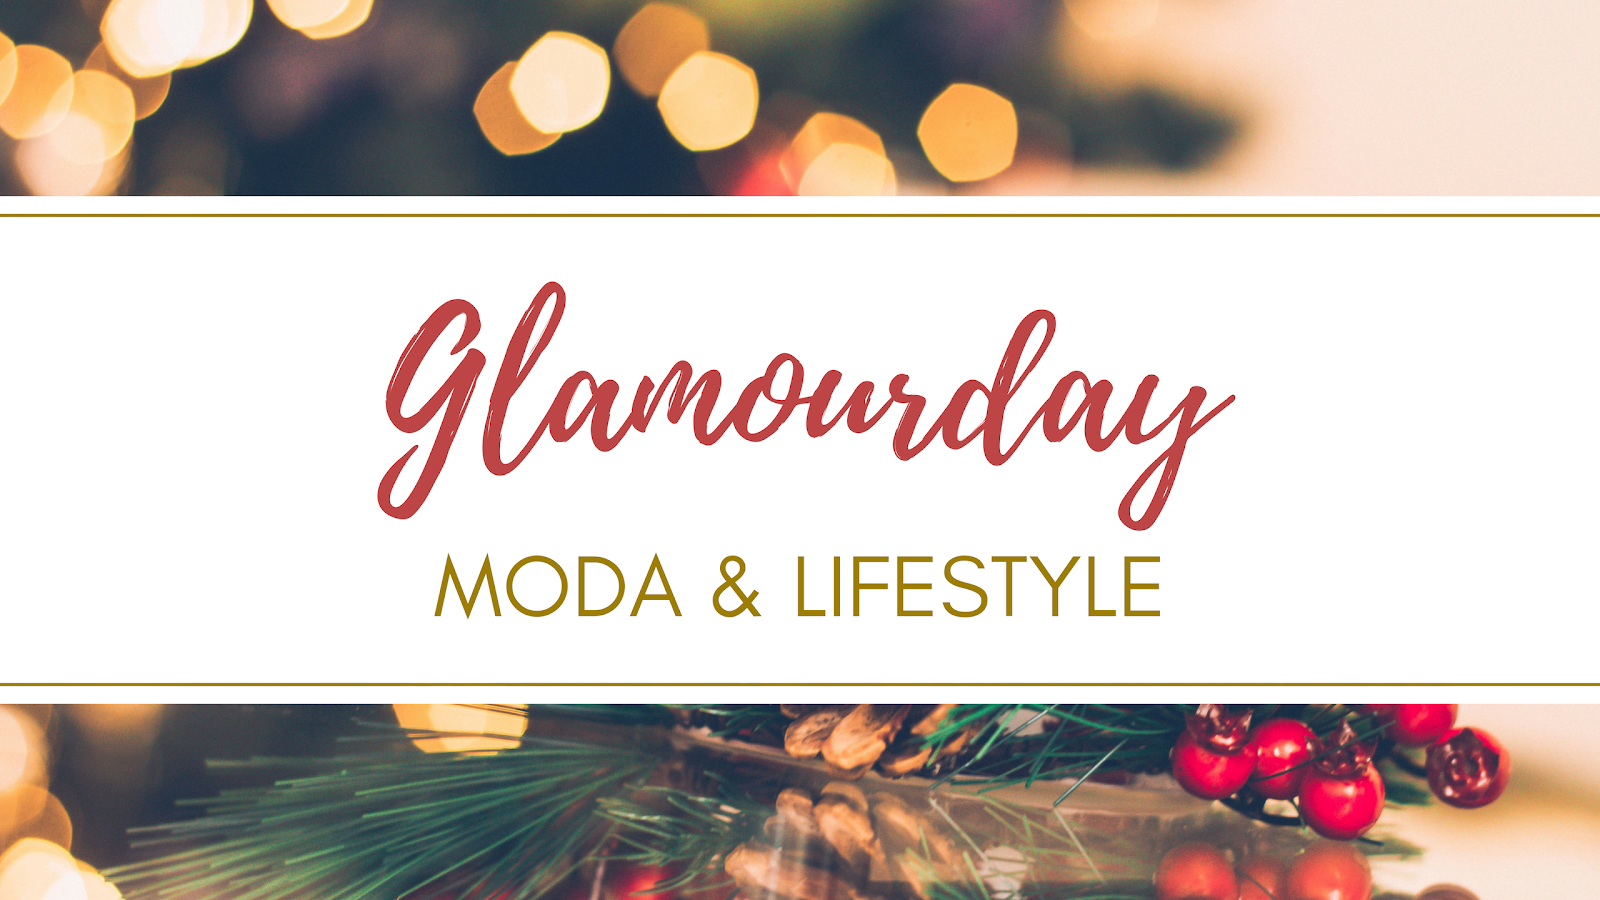 Glamourday Moda Lifestyle Storytelling Blog